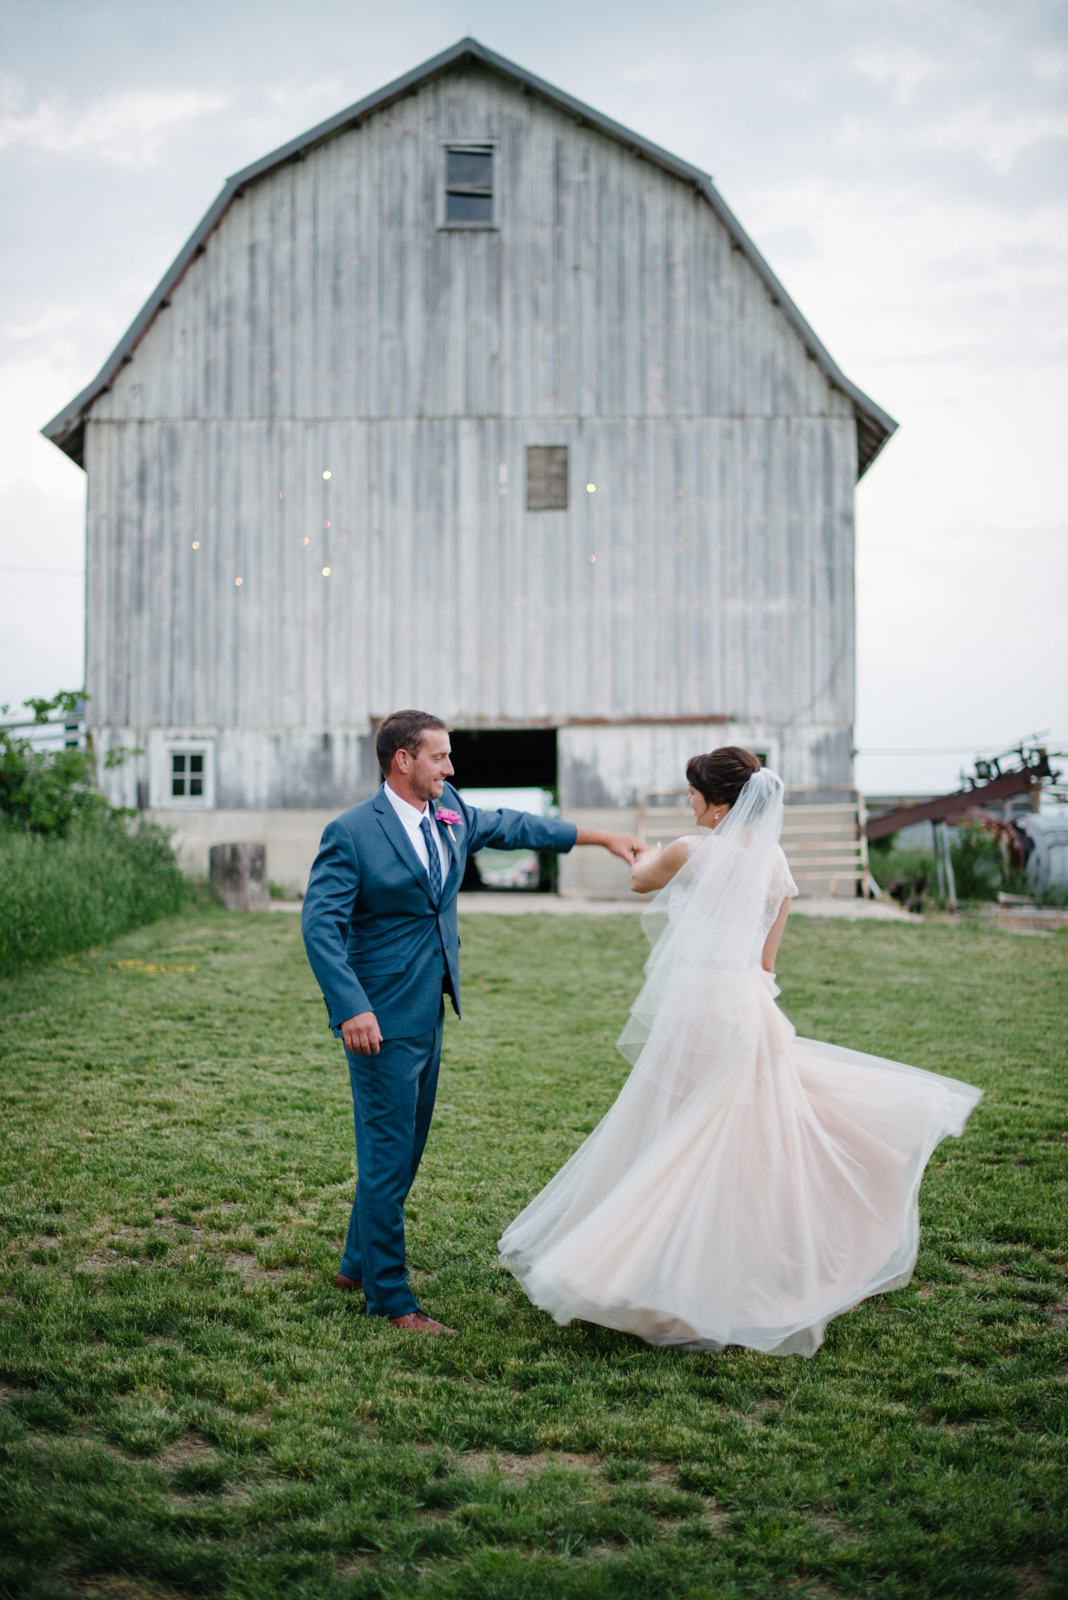 bride, groom, dance, barn wedding, wedding dress